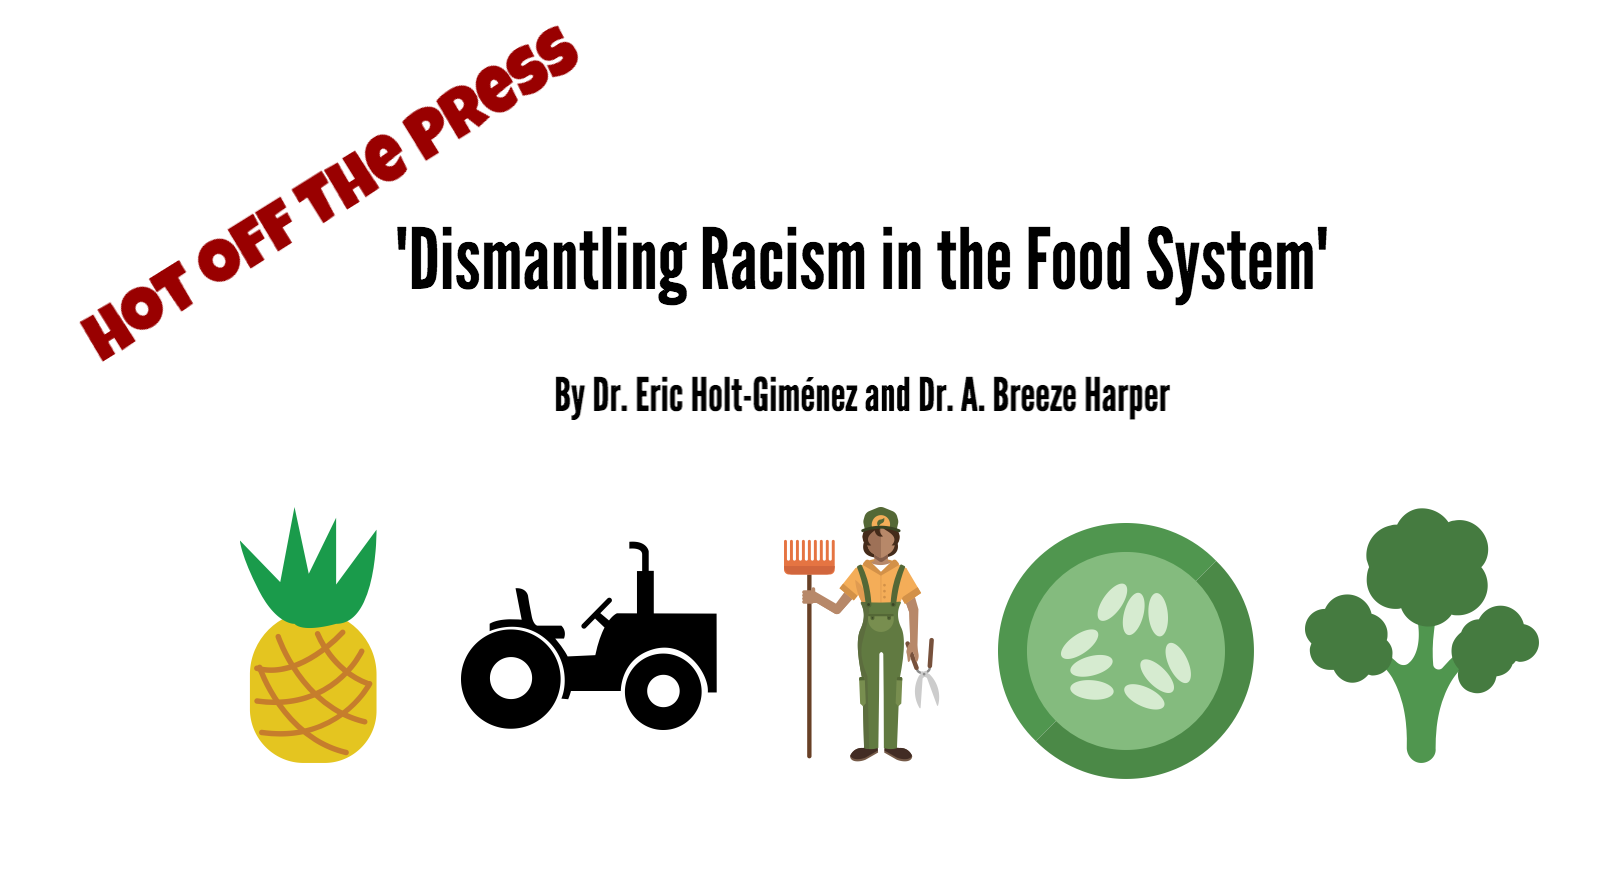 dismantling-racism-in-the-food-system (2)